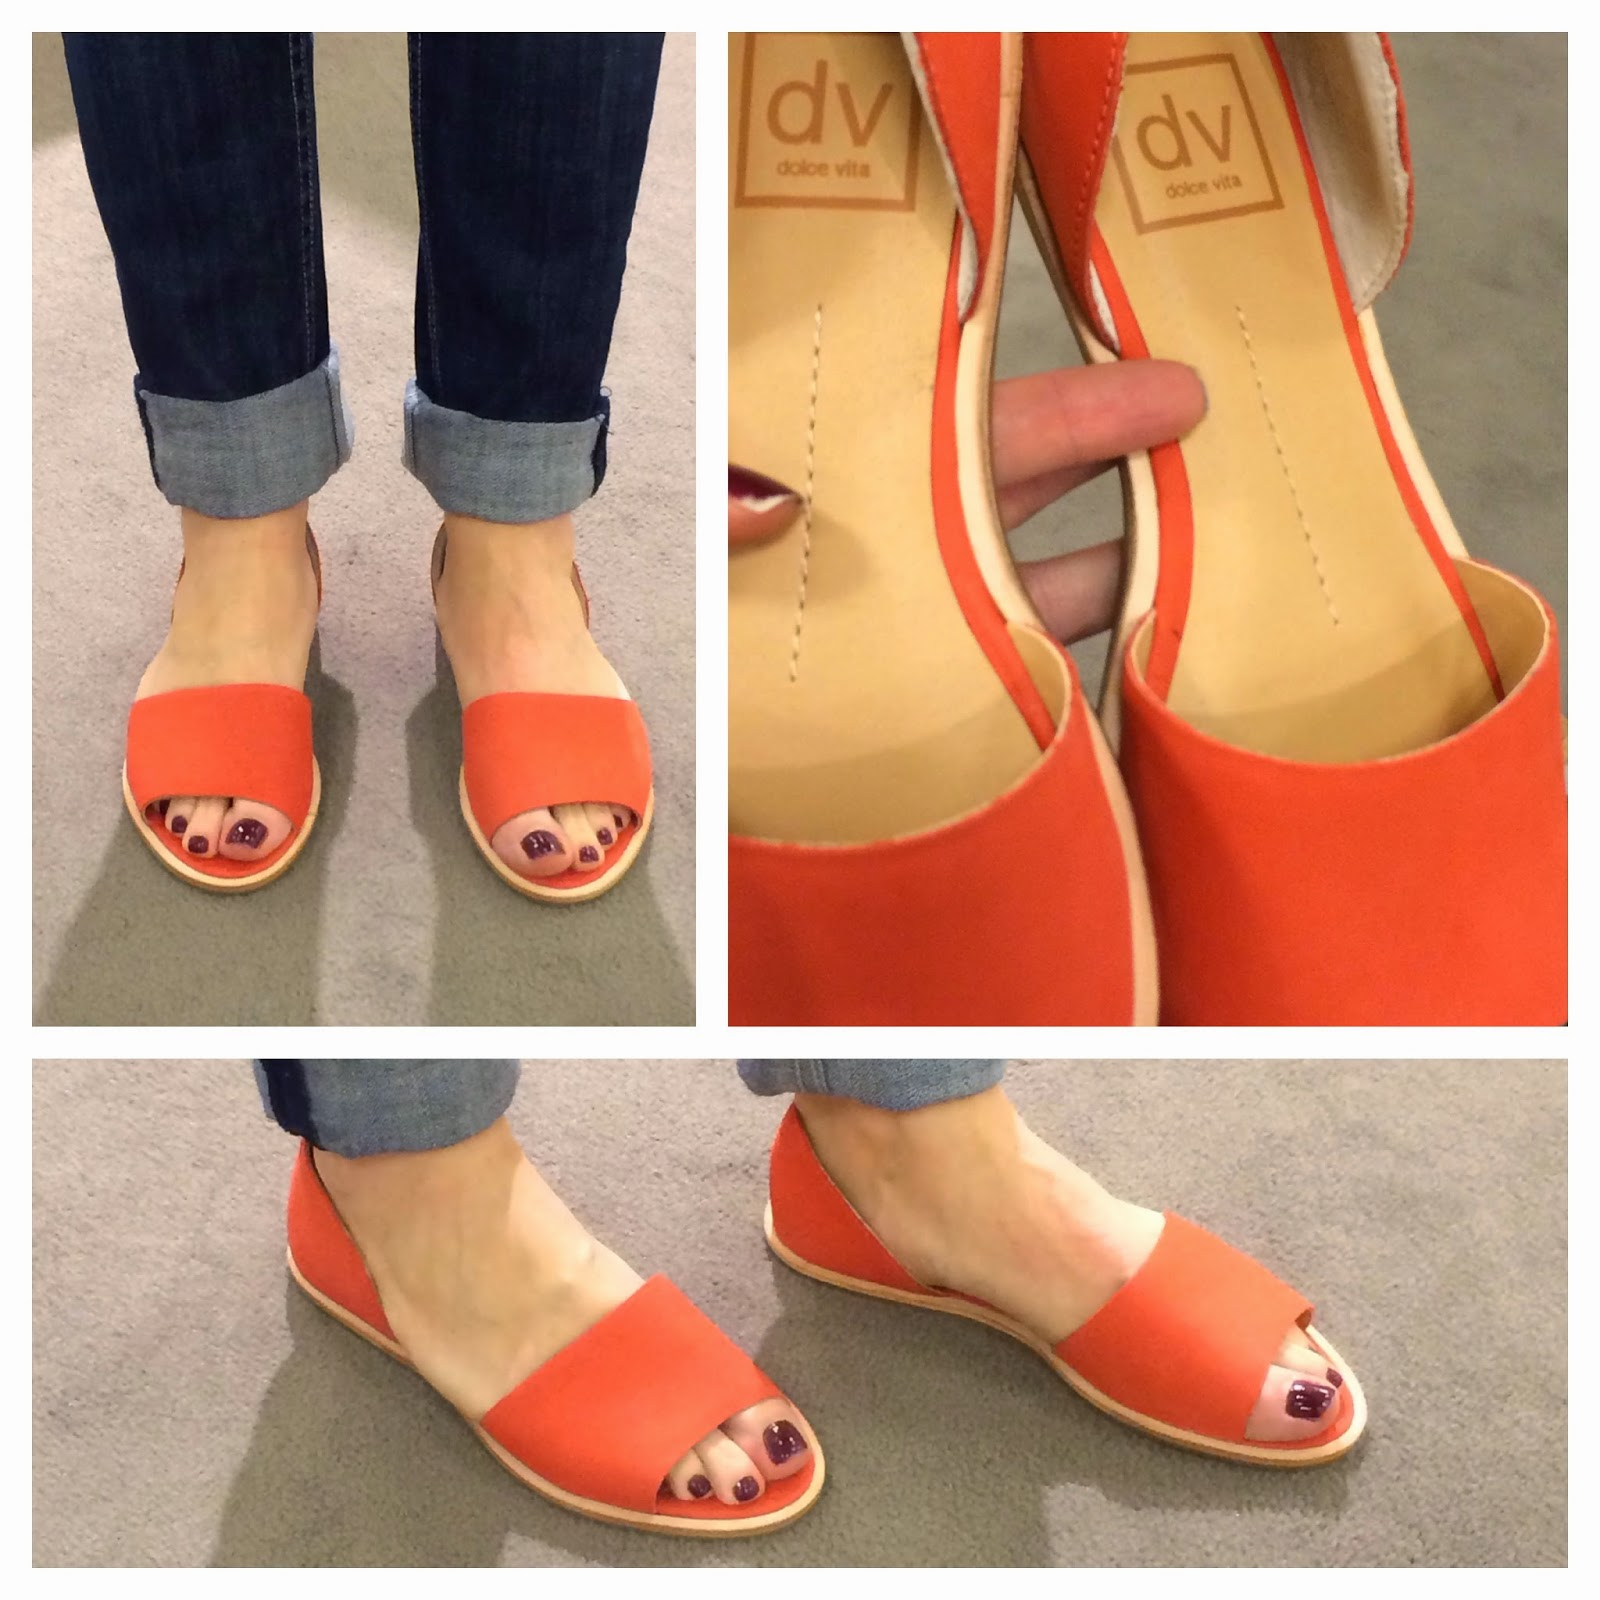 You can also check out THESE orange wedges from Steve Madden and THESE from  Michael Kors. Or if you prefer a flat sandal, check out the Sam Edelman  thong ...